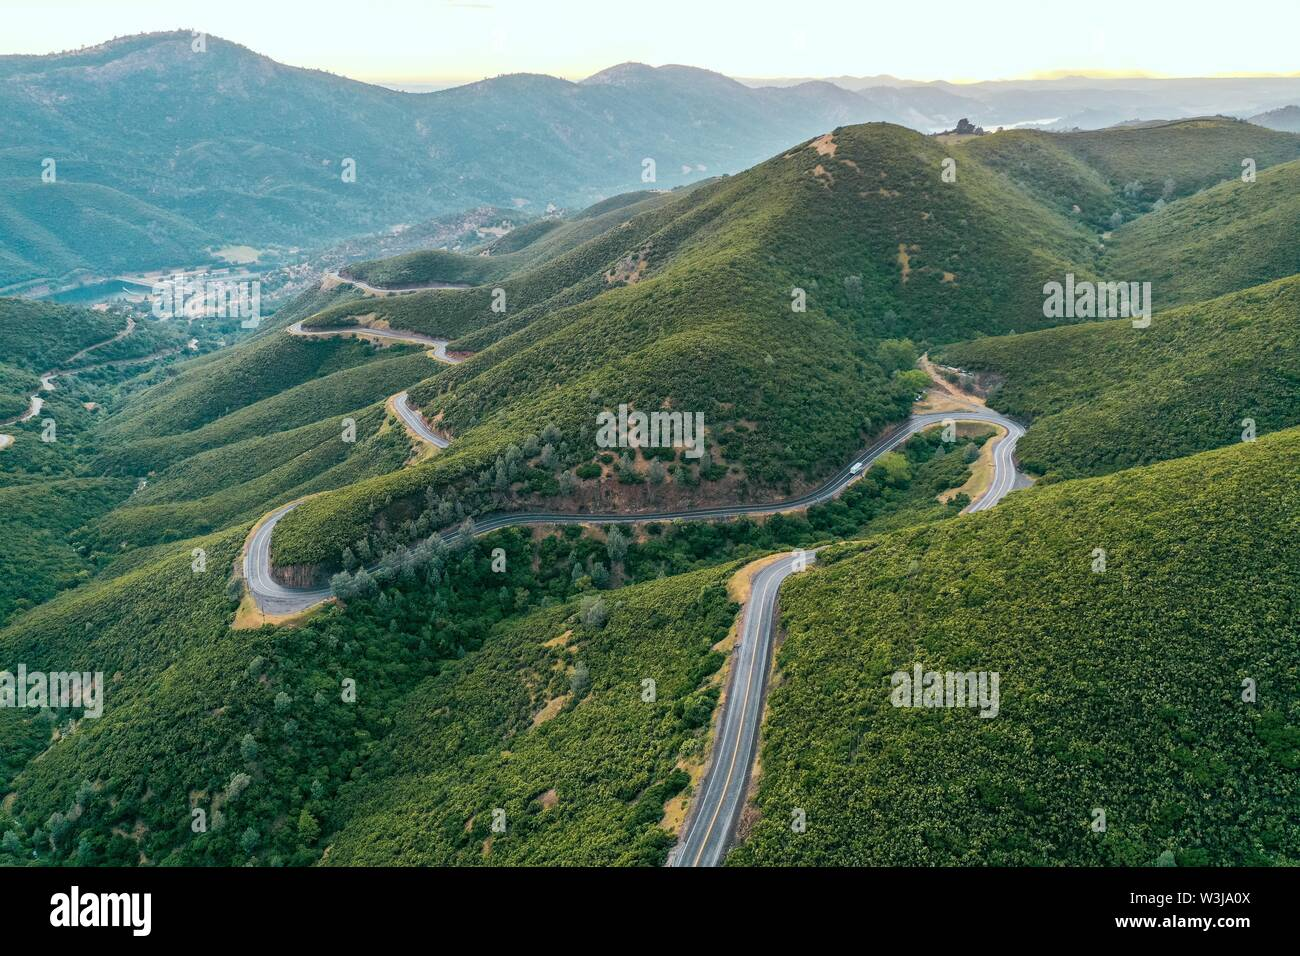 An aerial shot of beautiful green hills and mountains with a narrow curvy road in the middle - Stock Image